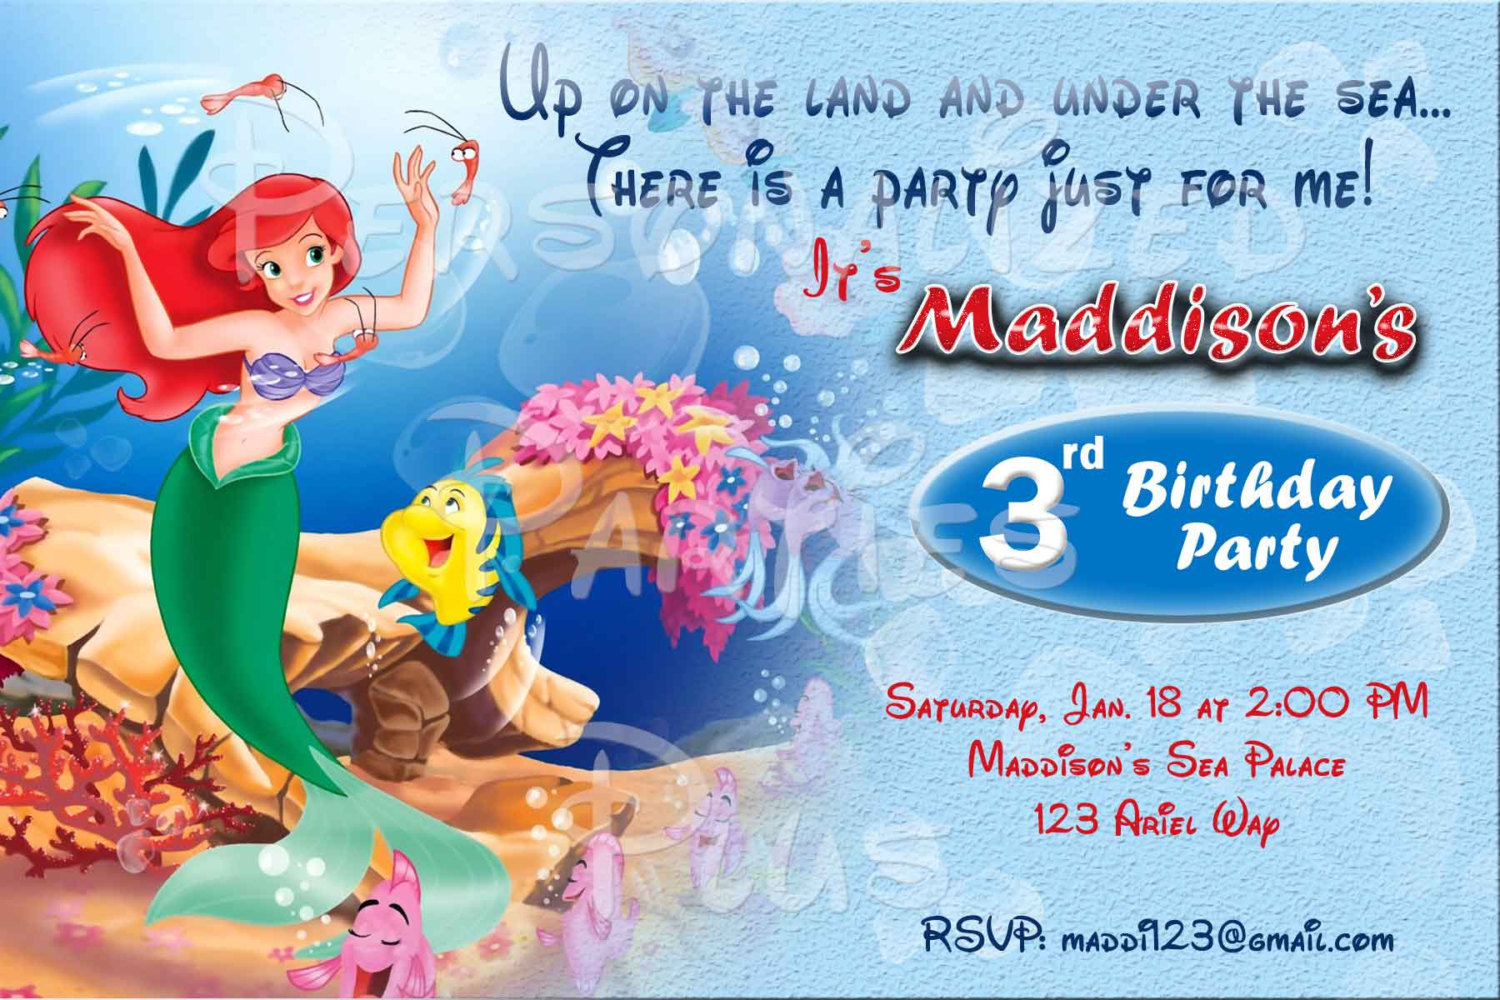 The Little Mermaid invitations in three different styles all have Princess Ariel